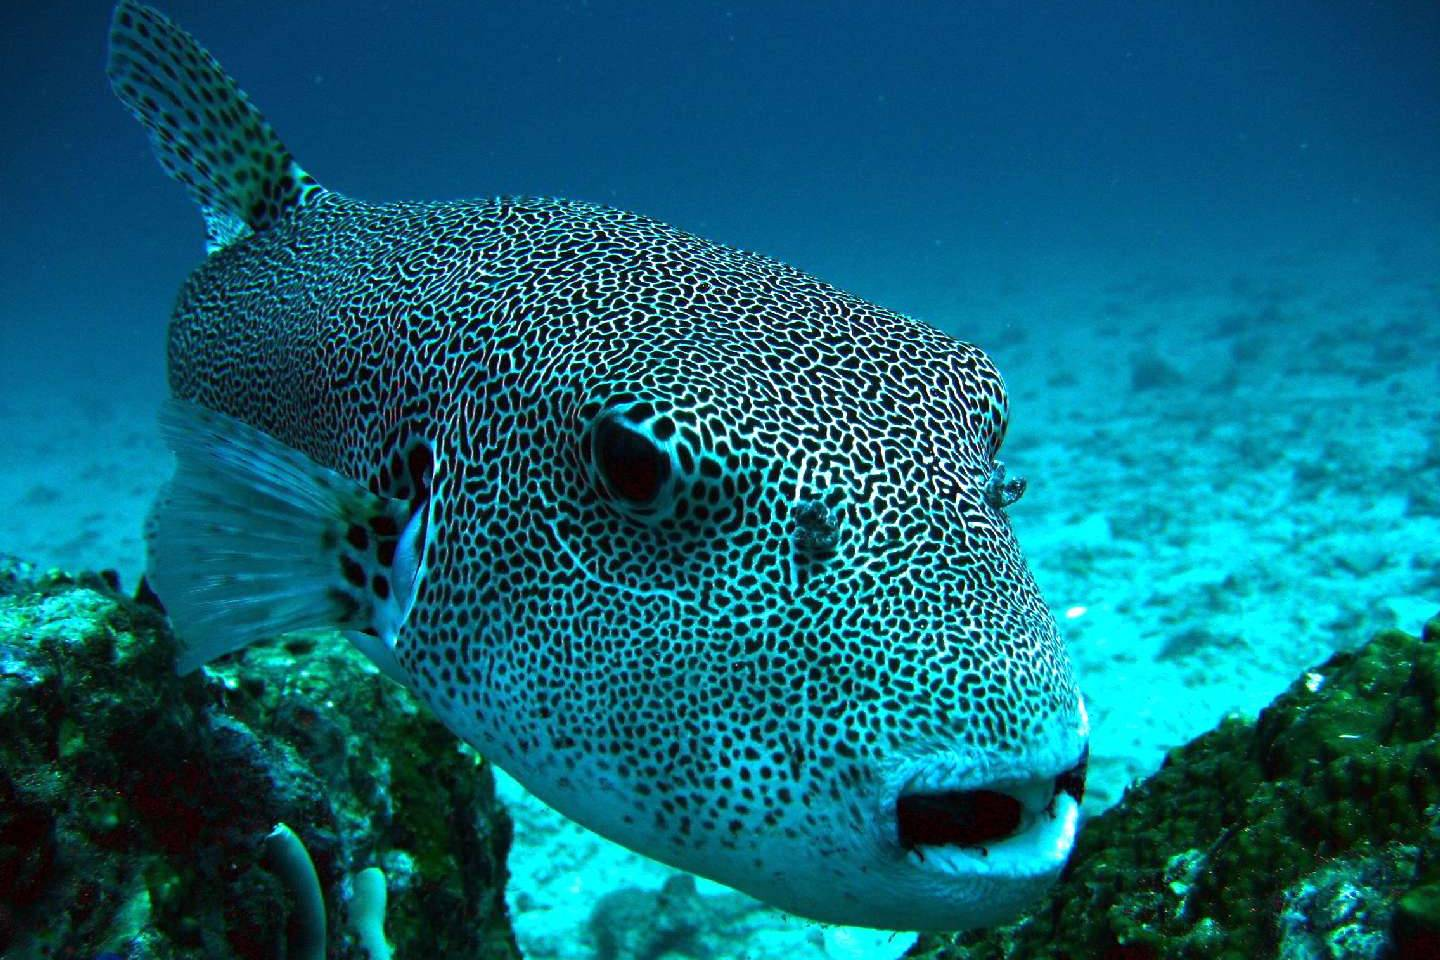 Bida nok dive site information video phuket dive tours for Giant puffer fish